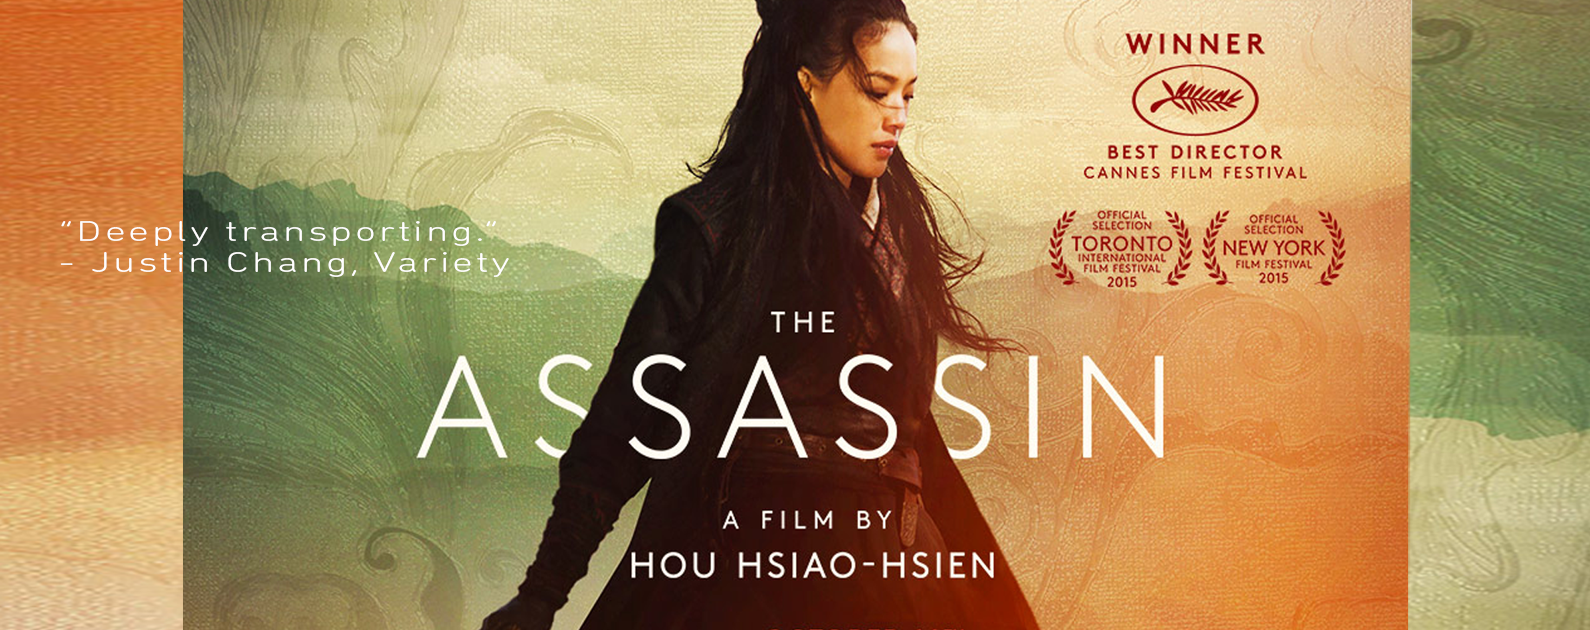 New Showtimes Added! Taiwan's Acclaimed Thriller,The Assassin, Now Playing Until January 14th